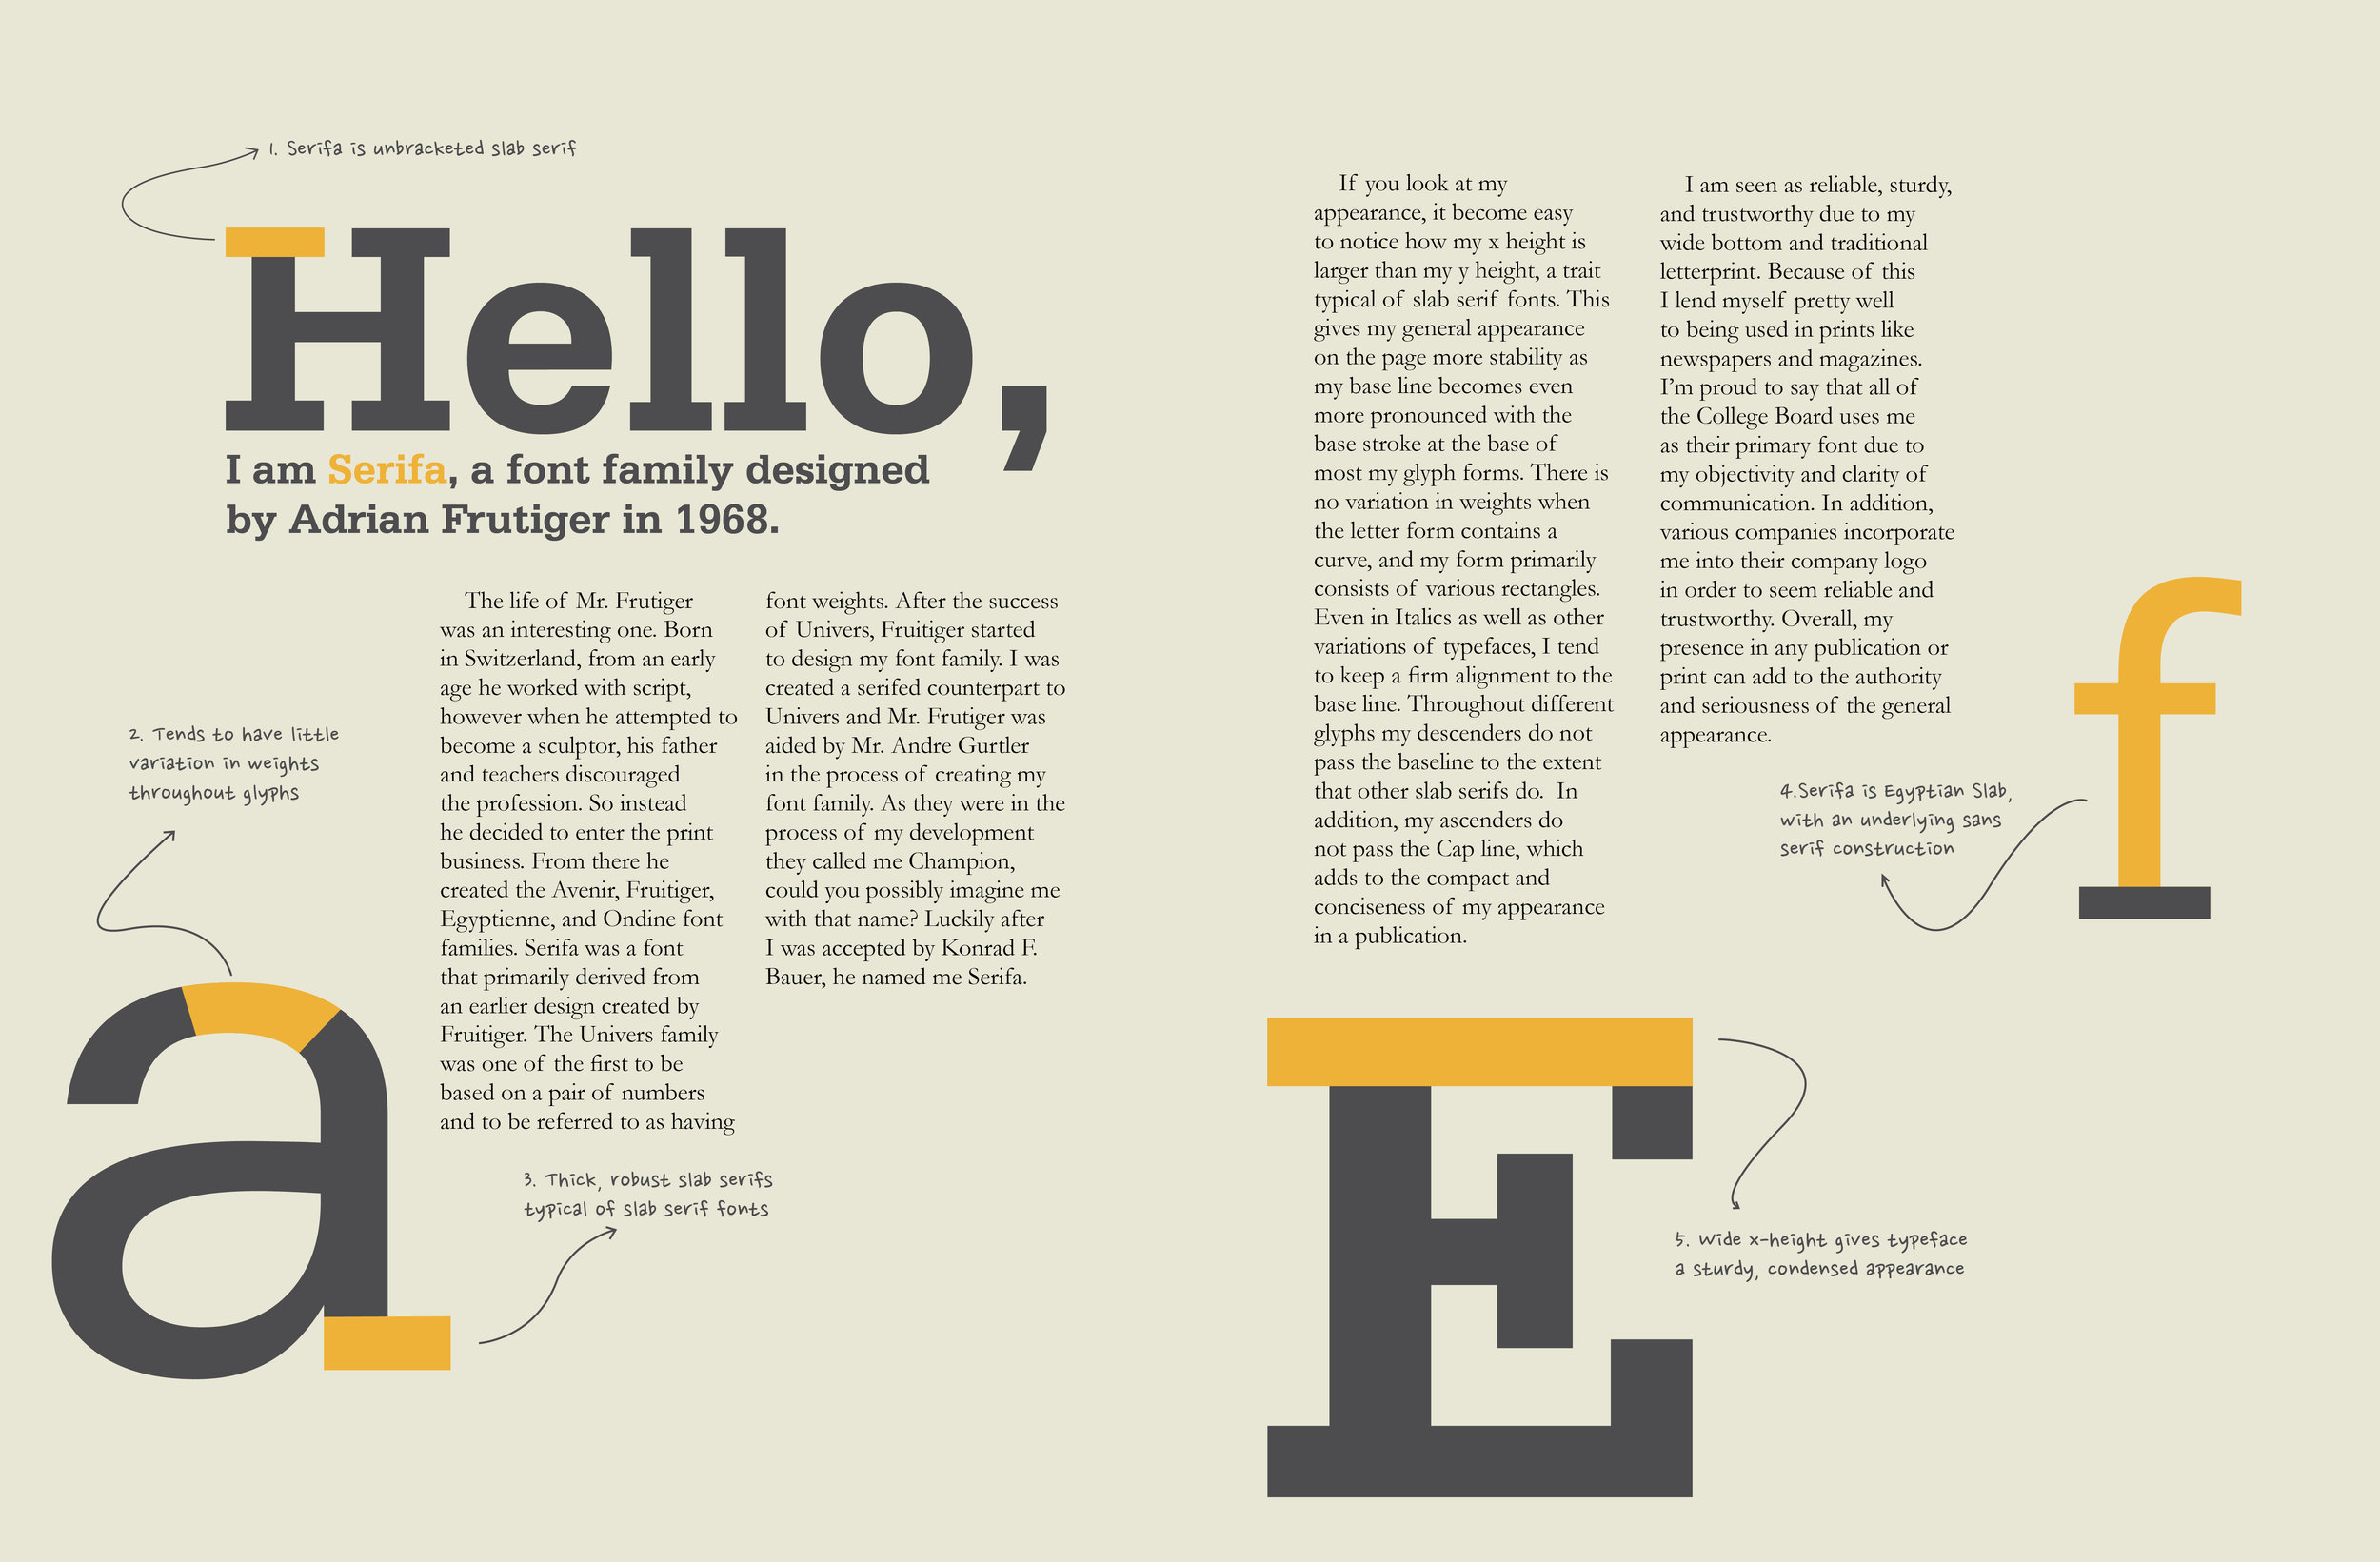 Adobe Illustrator: Typeface spread done in conjunction with video. Includes essay conducted about the typeface.